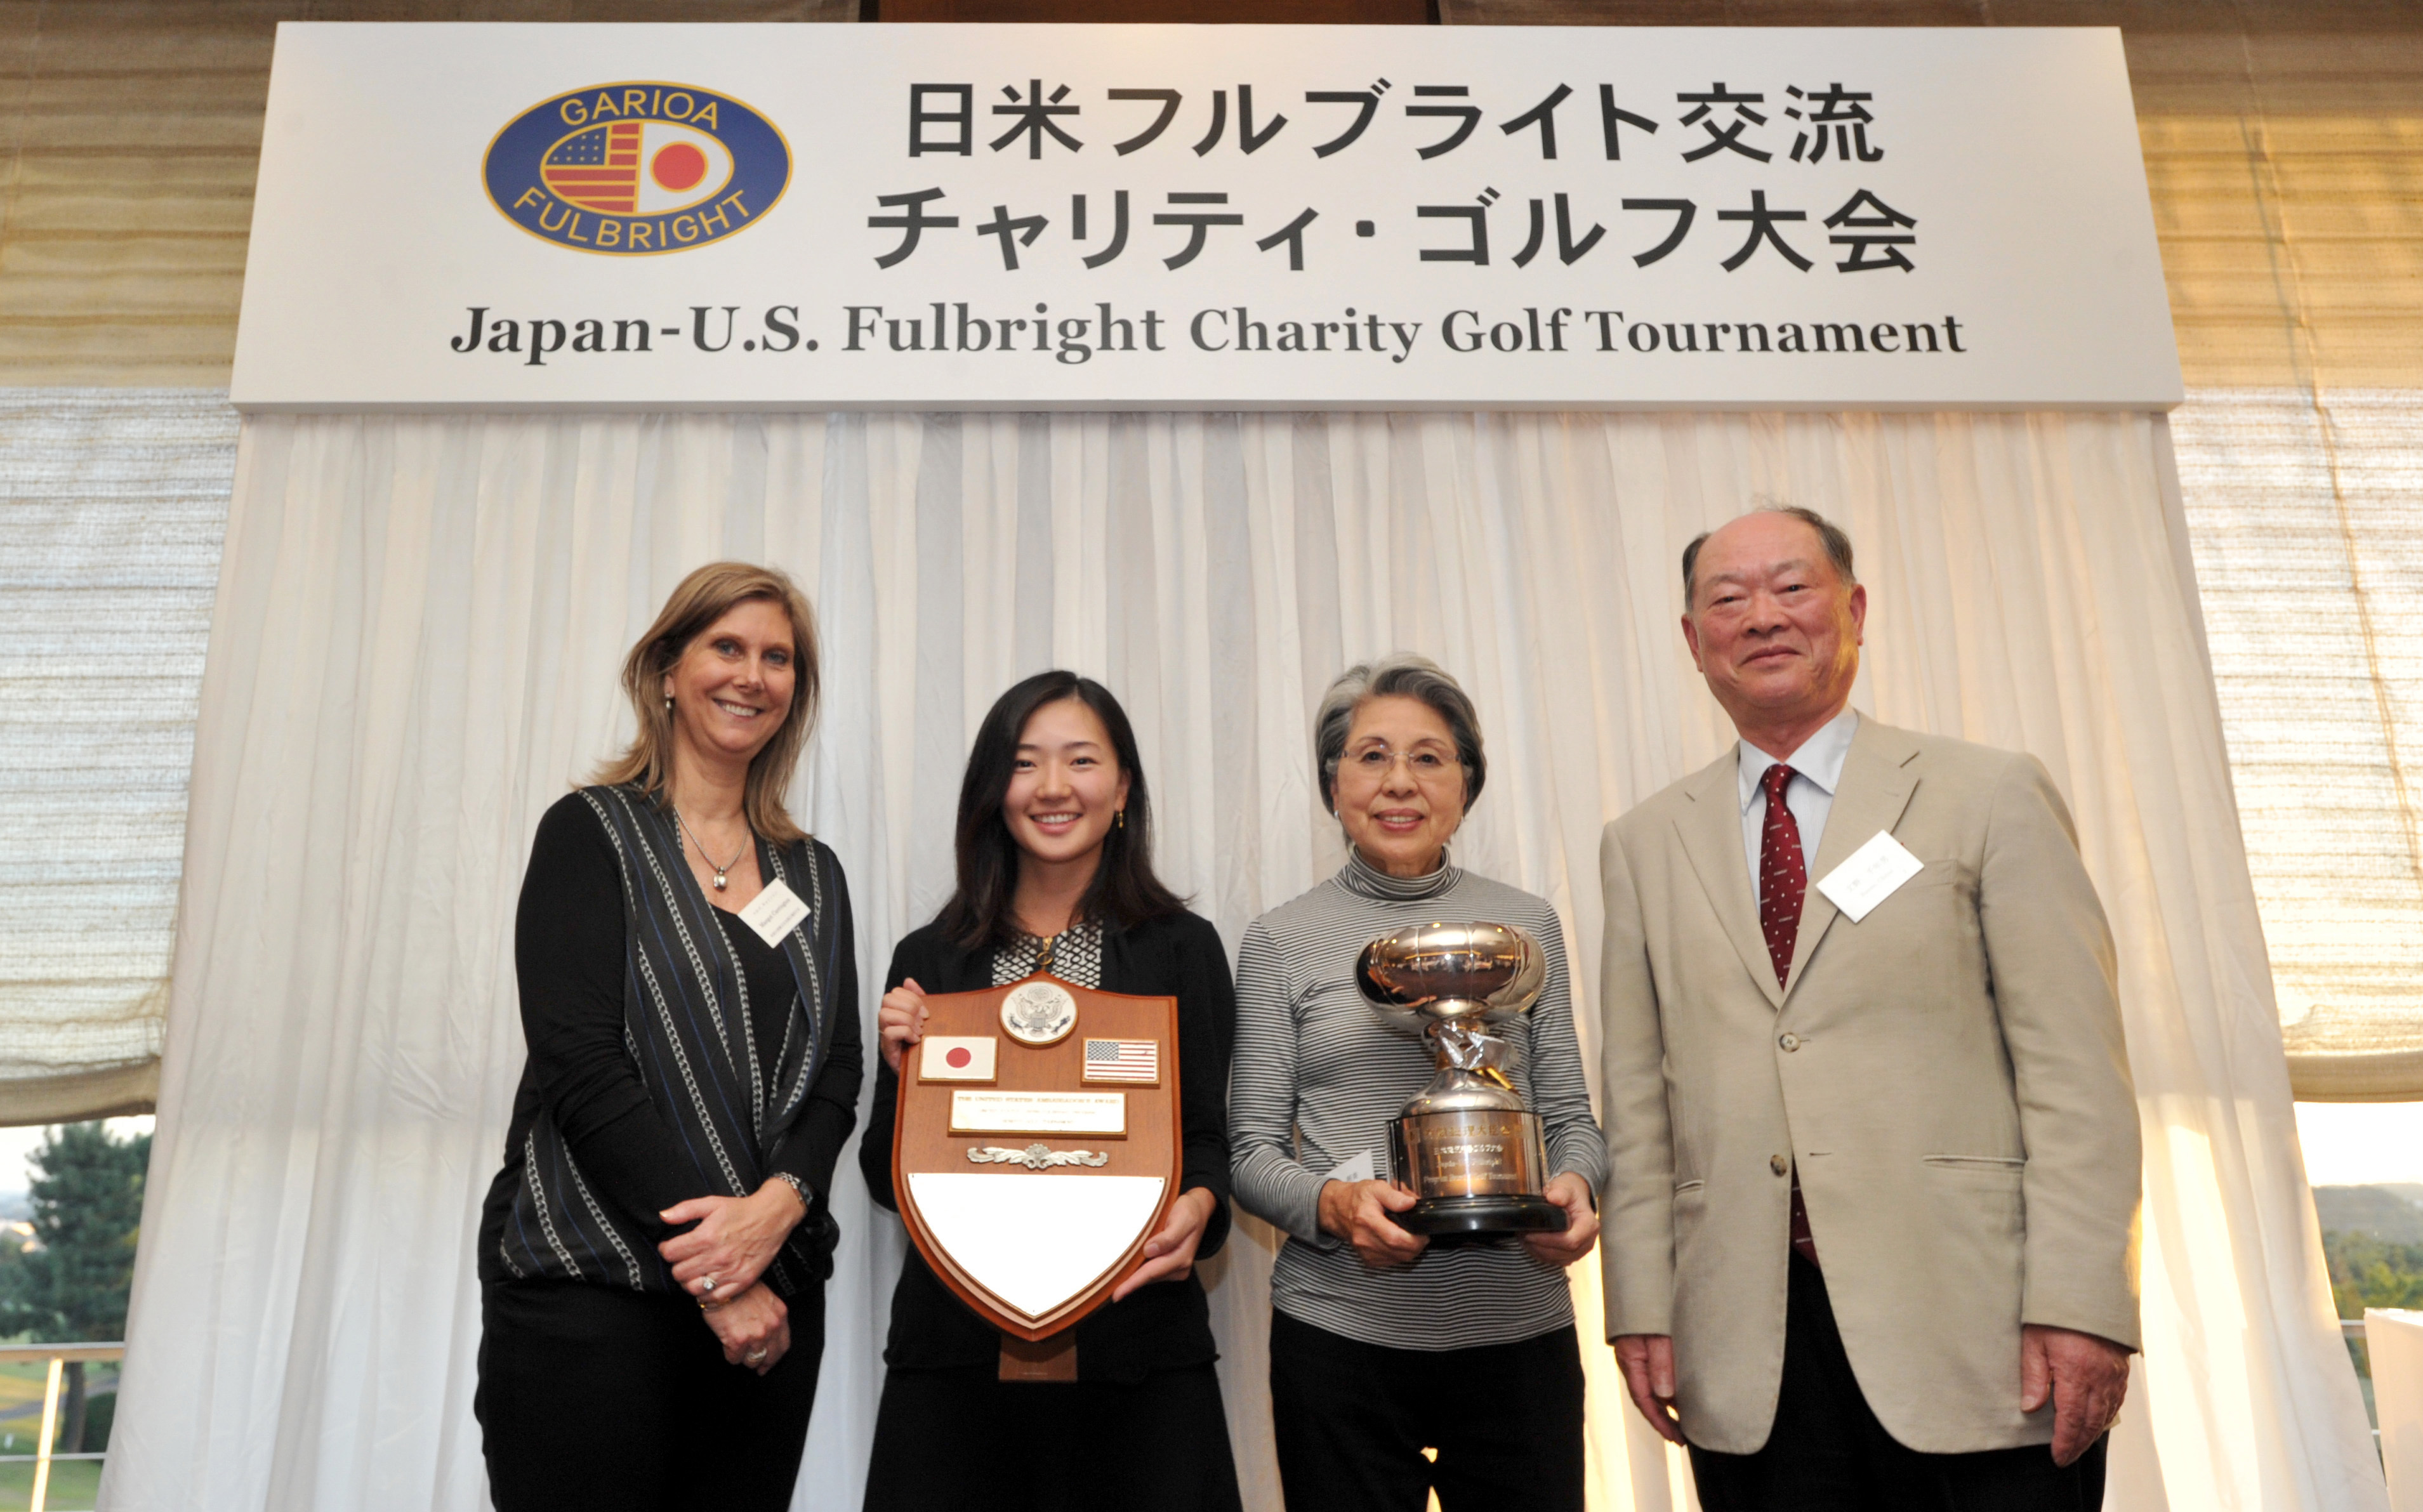 Terumi Fujisaki (second from right) won the Prime Minister's Cup, while Sari Ichise (second from left) was awarded the U.S. Ambassador's Plaque, at the 39th annual Japan-U.S. Fulbright Charity Golf Tournament at the Totsuka Country Club in Kanagawa Prefecture on Oct. 26. Also pictured are the U.S. Embassy's Minister Counselor for Public Affairs Margot Carrington (left) and Fulbright Alumni Association of Japan President Chitoo Bunno.   YOSHIAKI MIURA